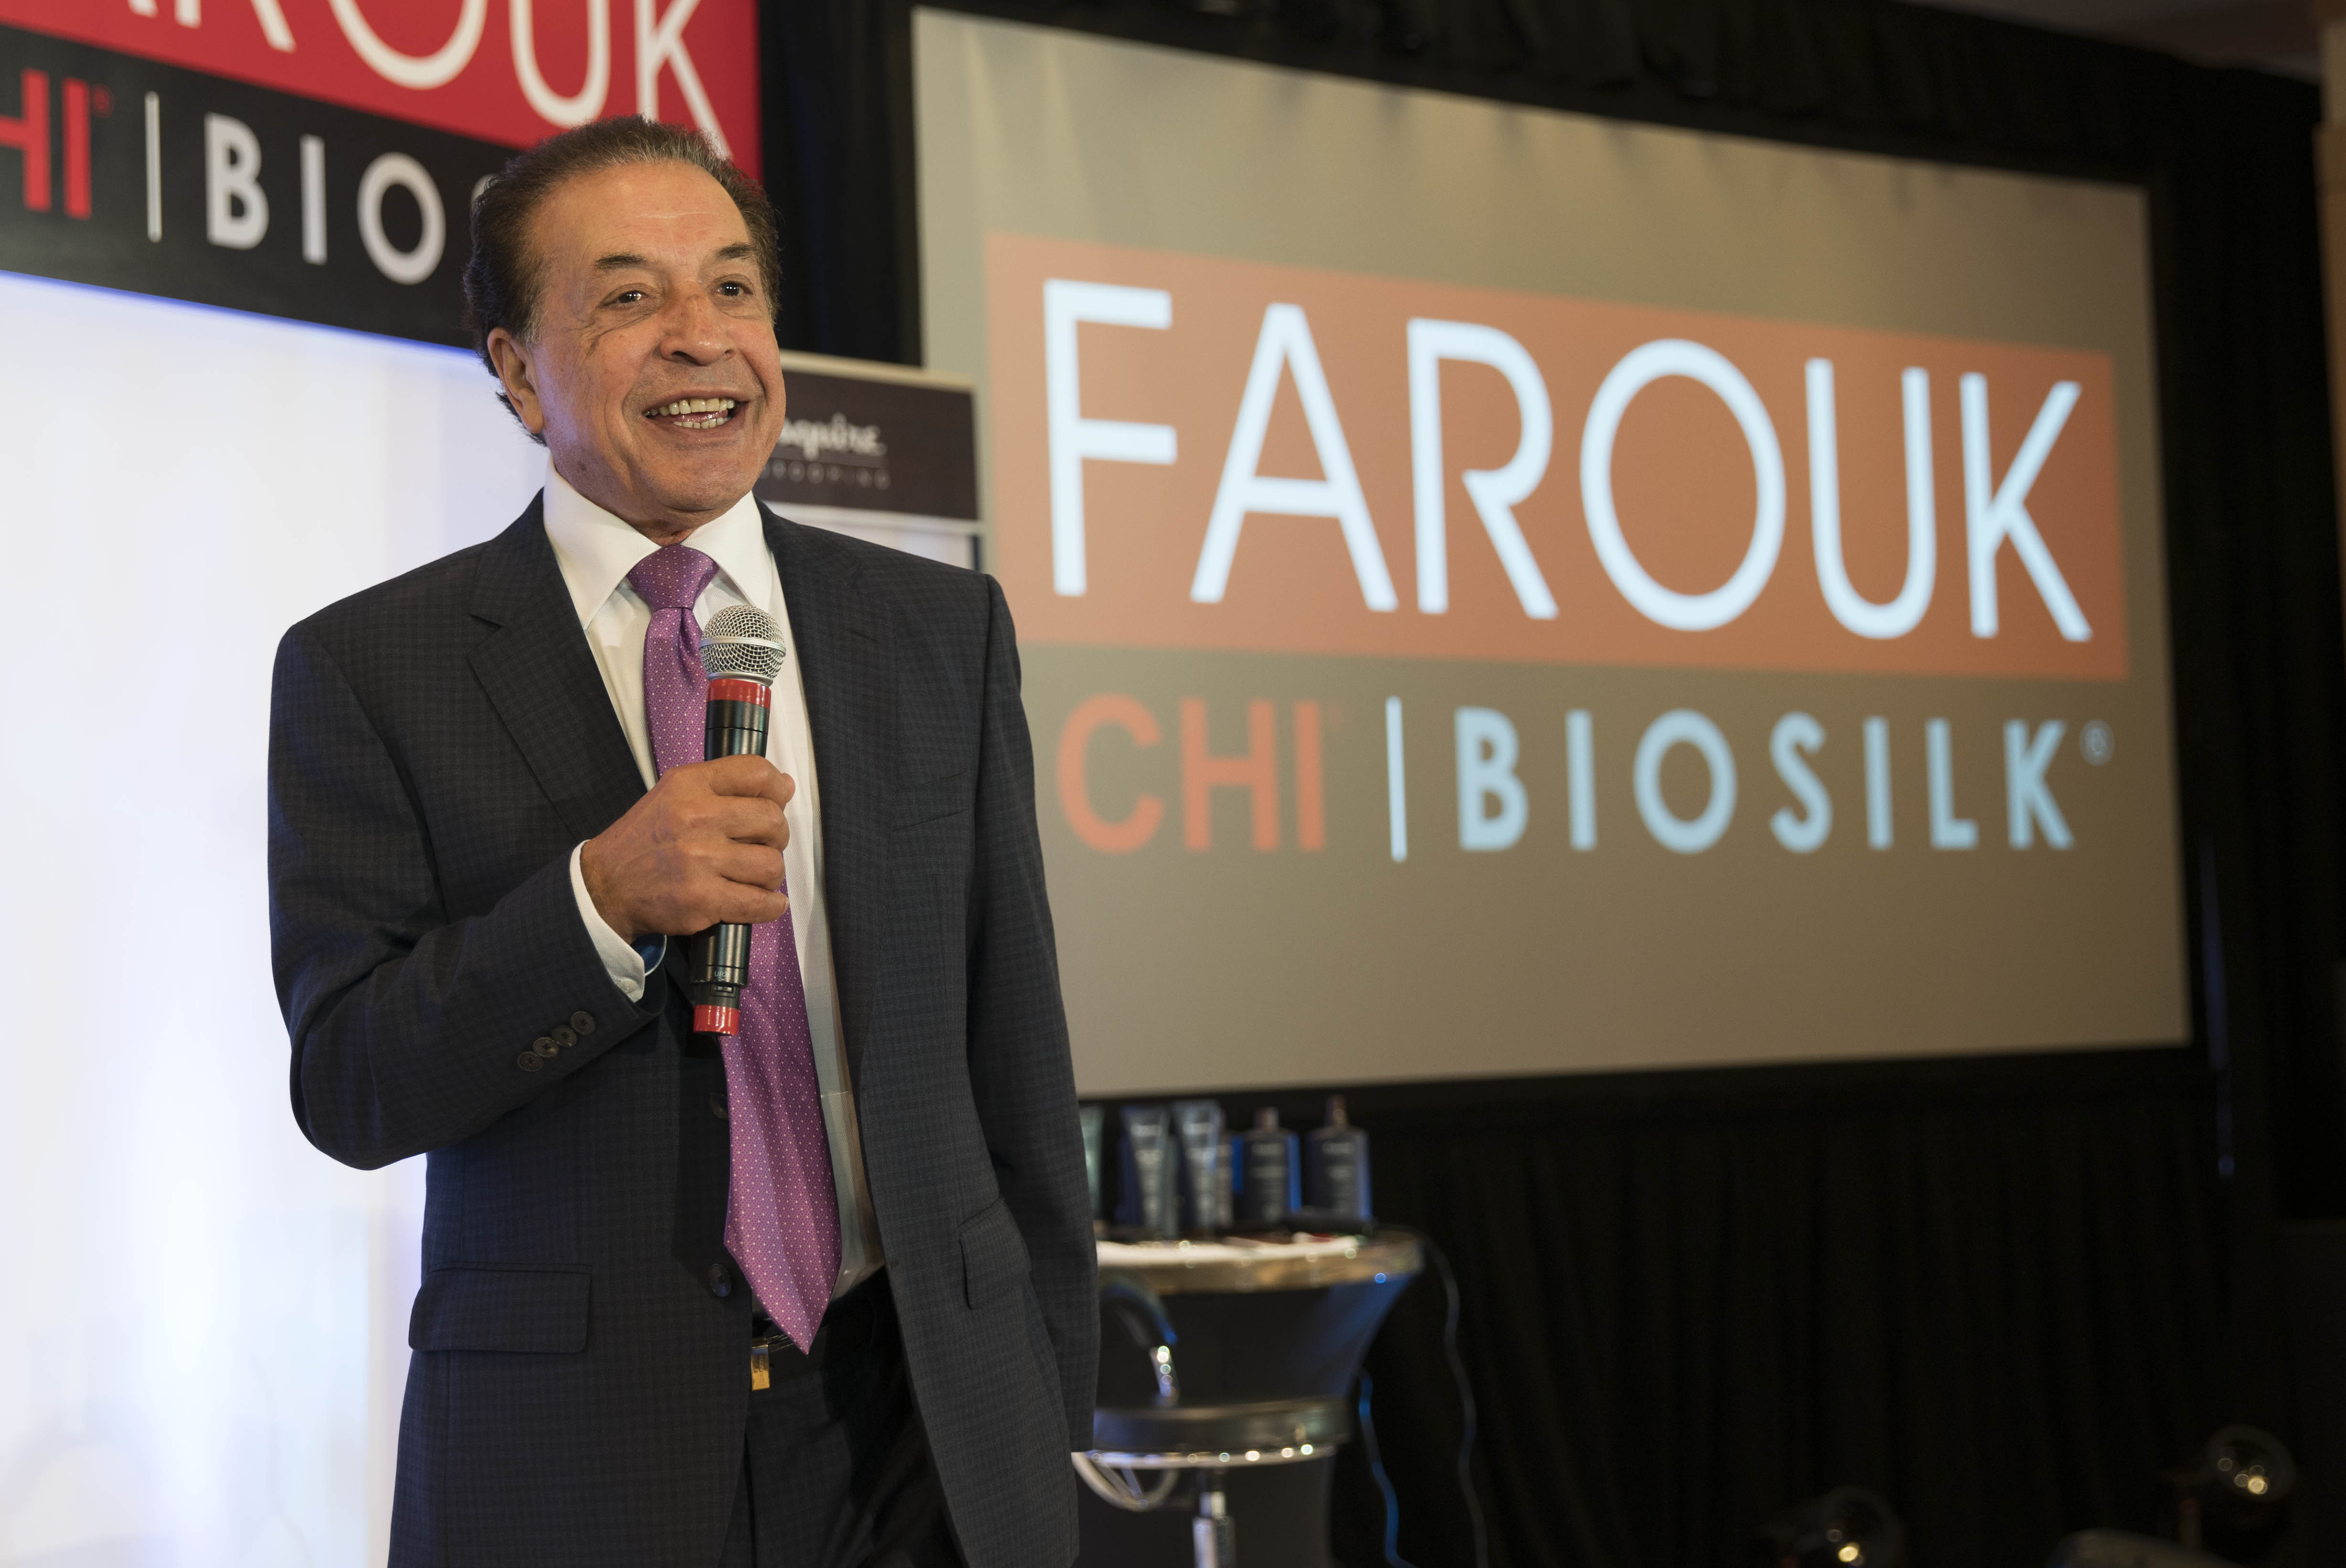 Dr. Farouk Shami welcomed distributors and their representatives from the United States and globally for the company's International Distributor Meeting